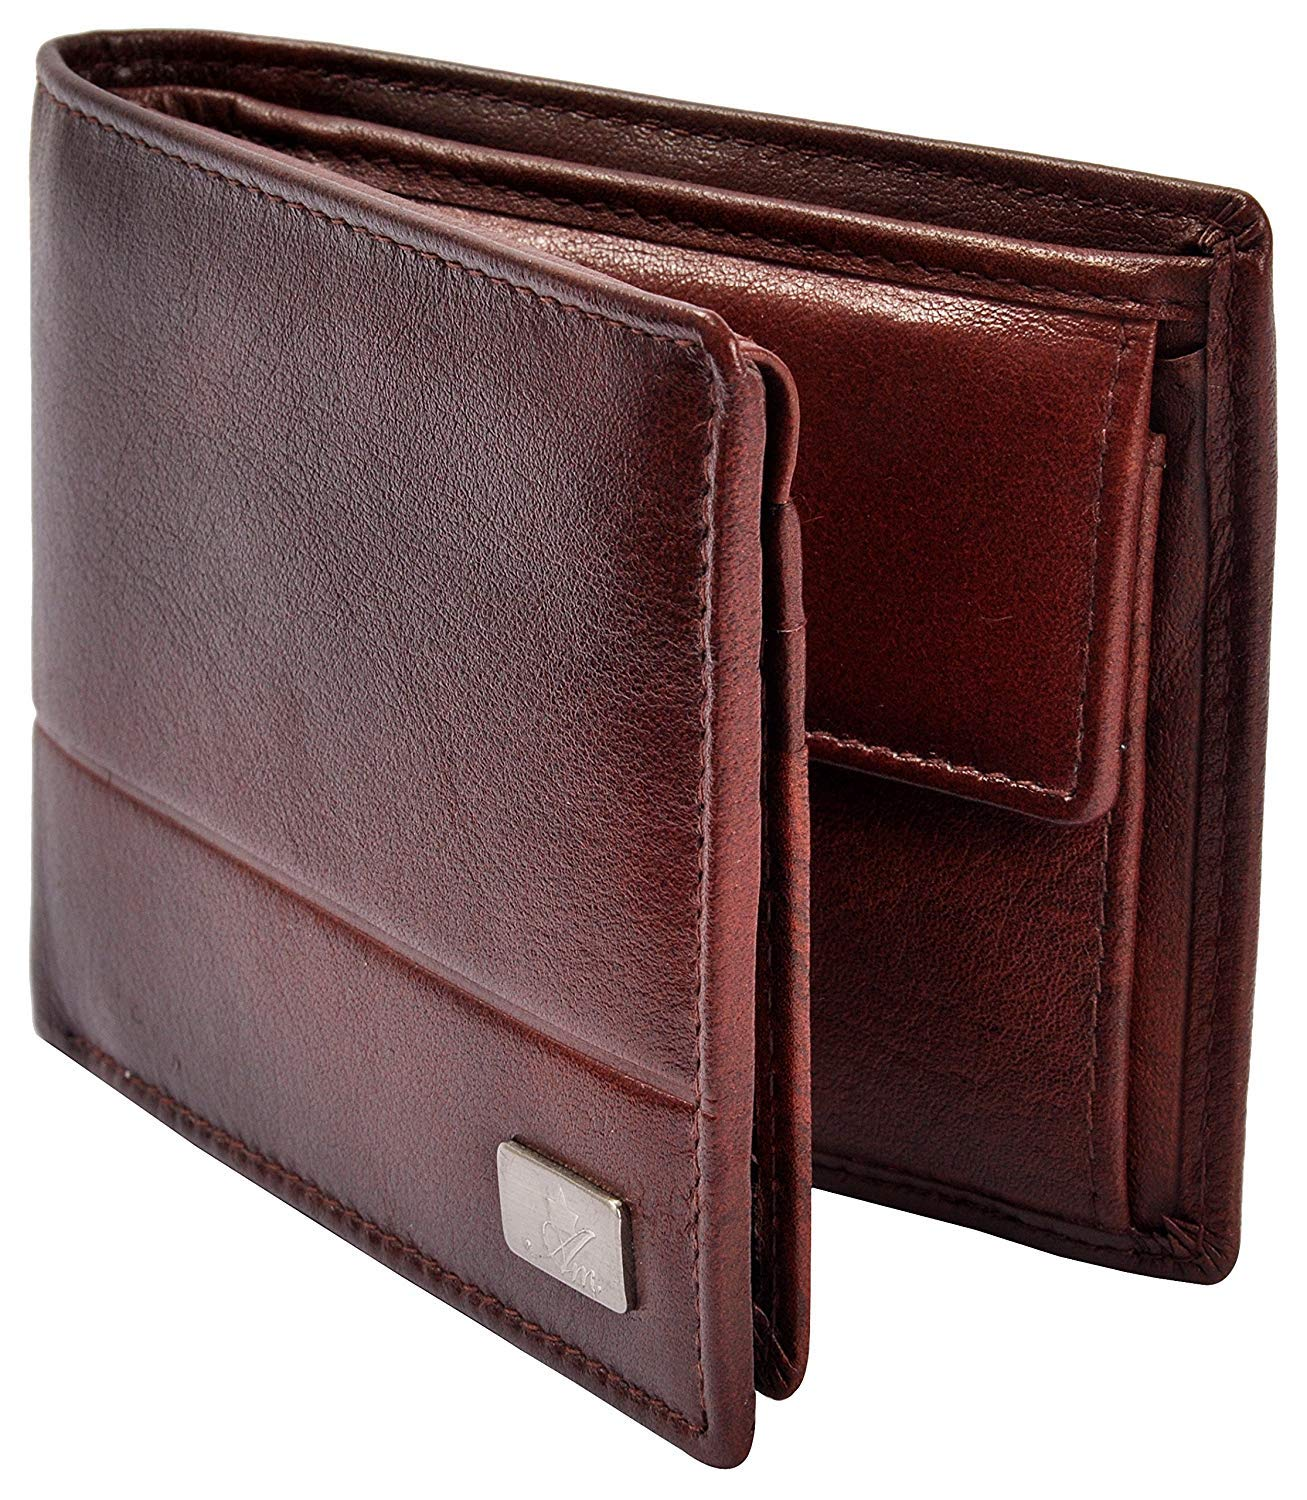 AM LEATHER Wallet Brown